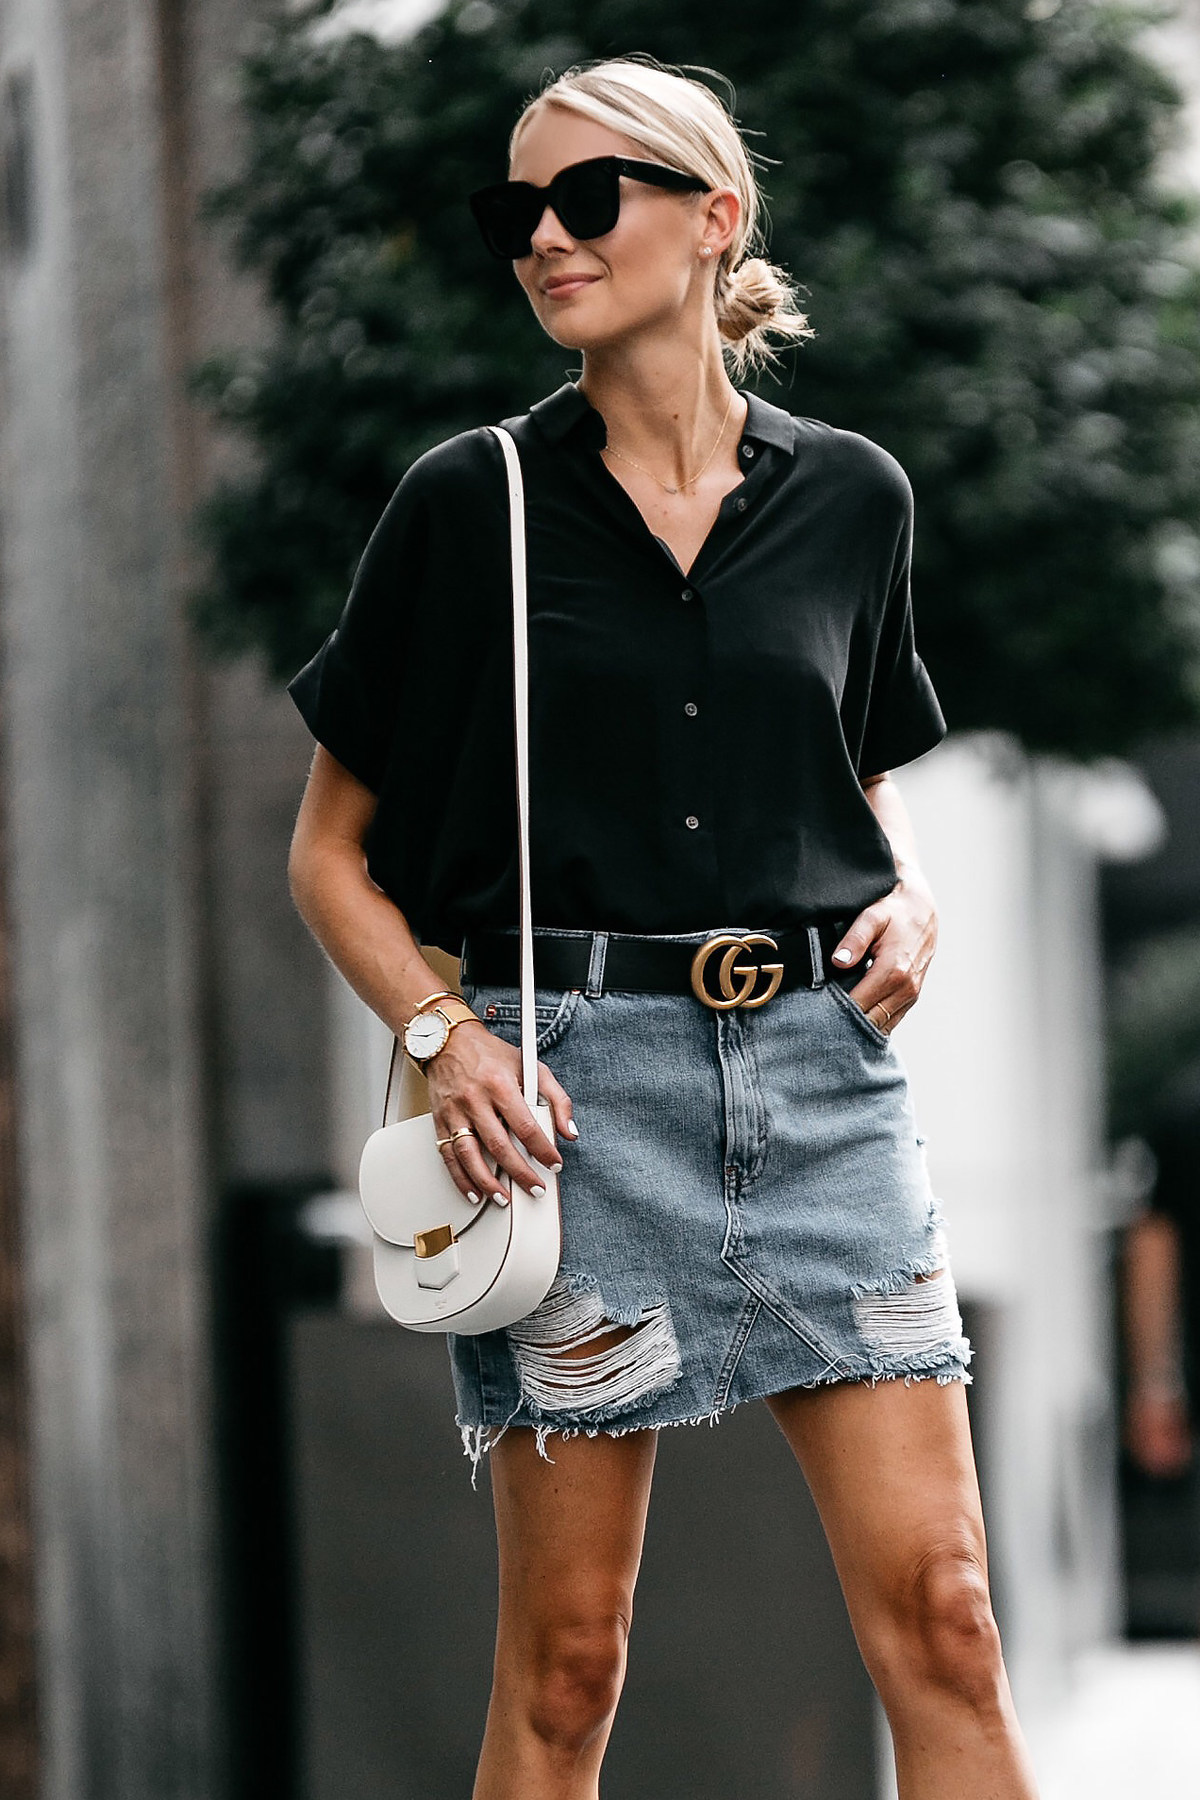 Blonde Woman Wearing Everlane Black Short Sleeve Shirt Topshop Ripped Denim Skirt Outfit Gucci Marmont Belt Celine Trotteur White Handbag Fashion Jackson Dallas Blogger Fashion Blogger Street Style